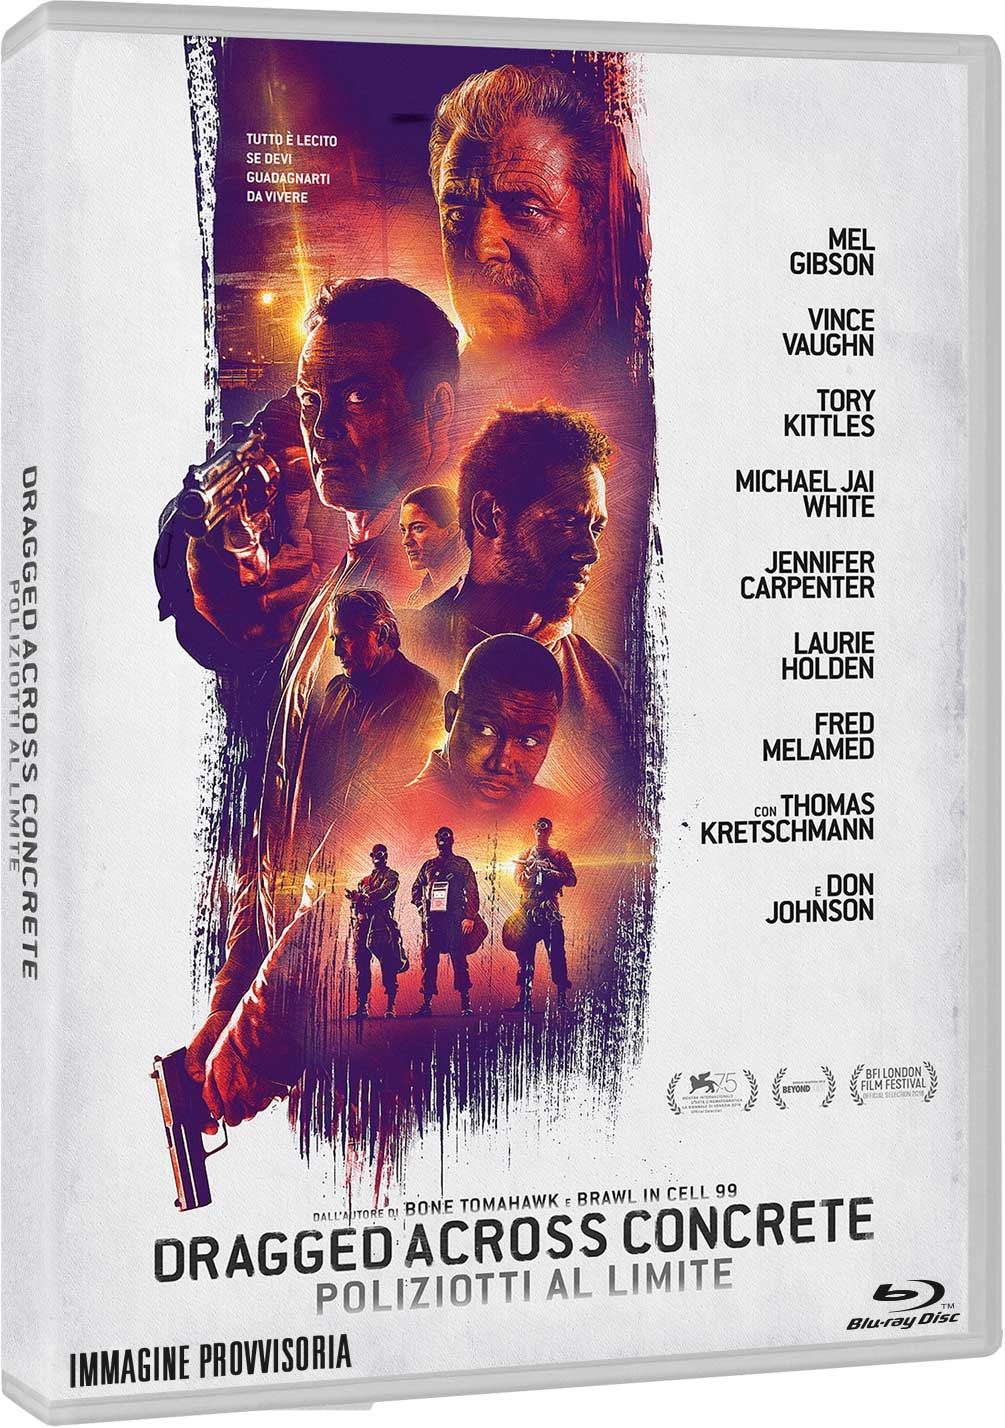 DRAGGED ACROSS CONCRETE - POLIZIOTTI AL LIMITE - BLU RAY